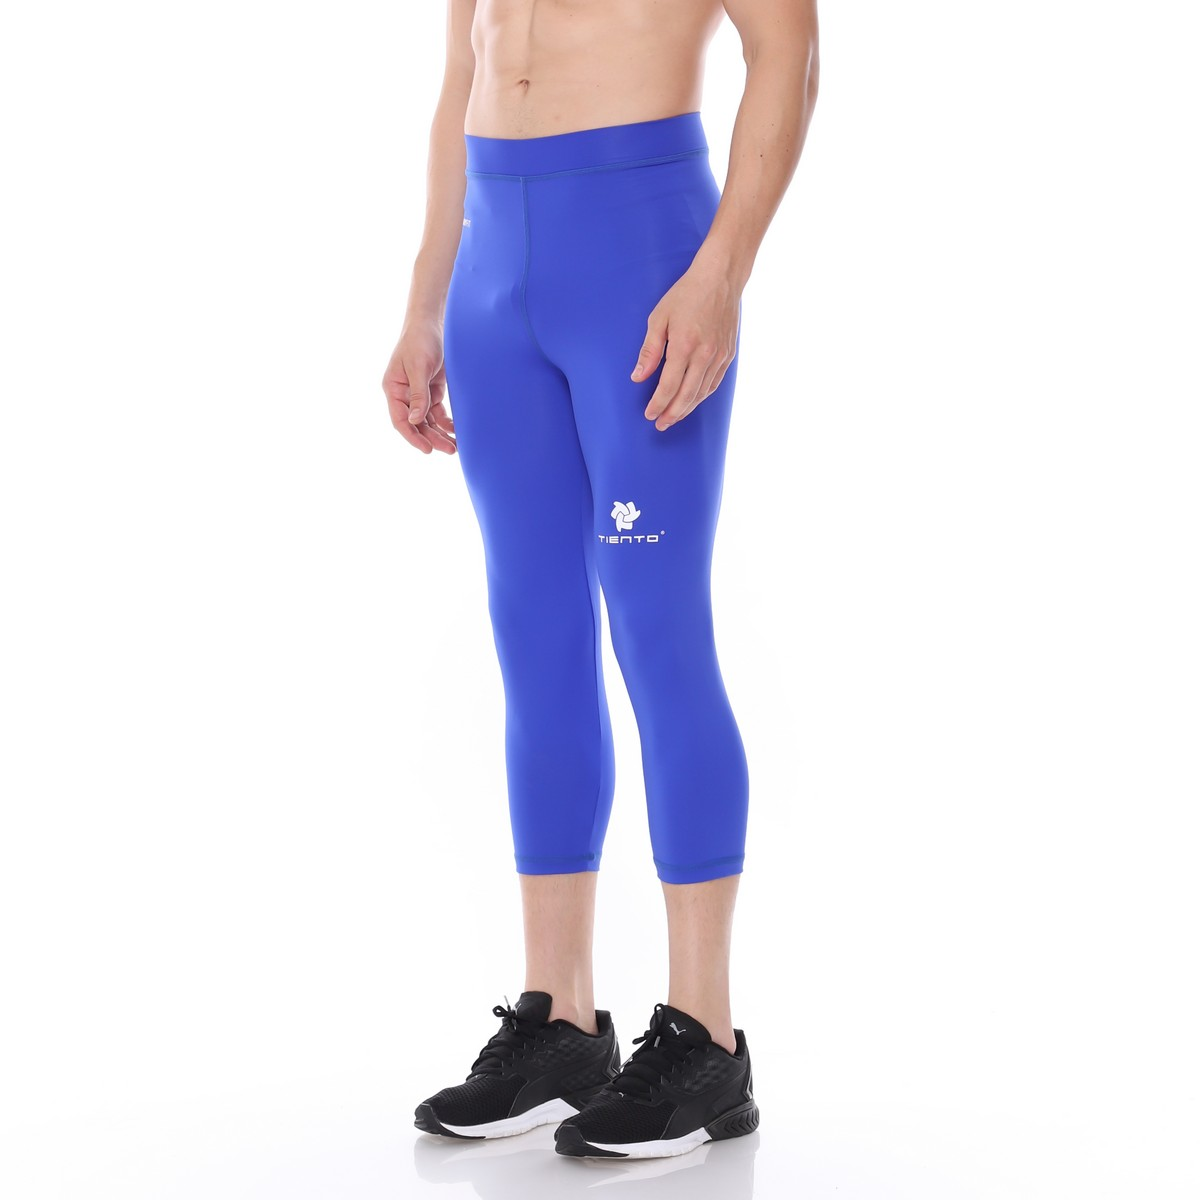 Celana Legging Sport 3 4 Pants Blue Men Tiento